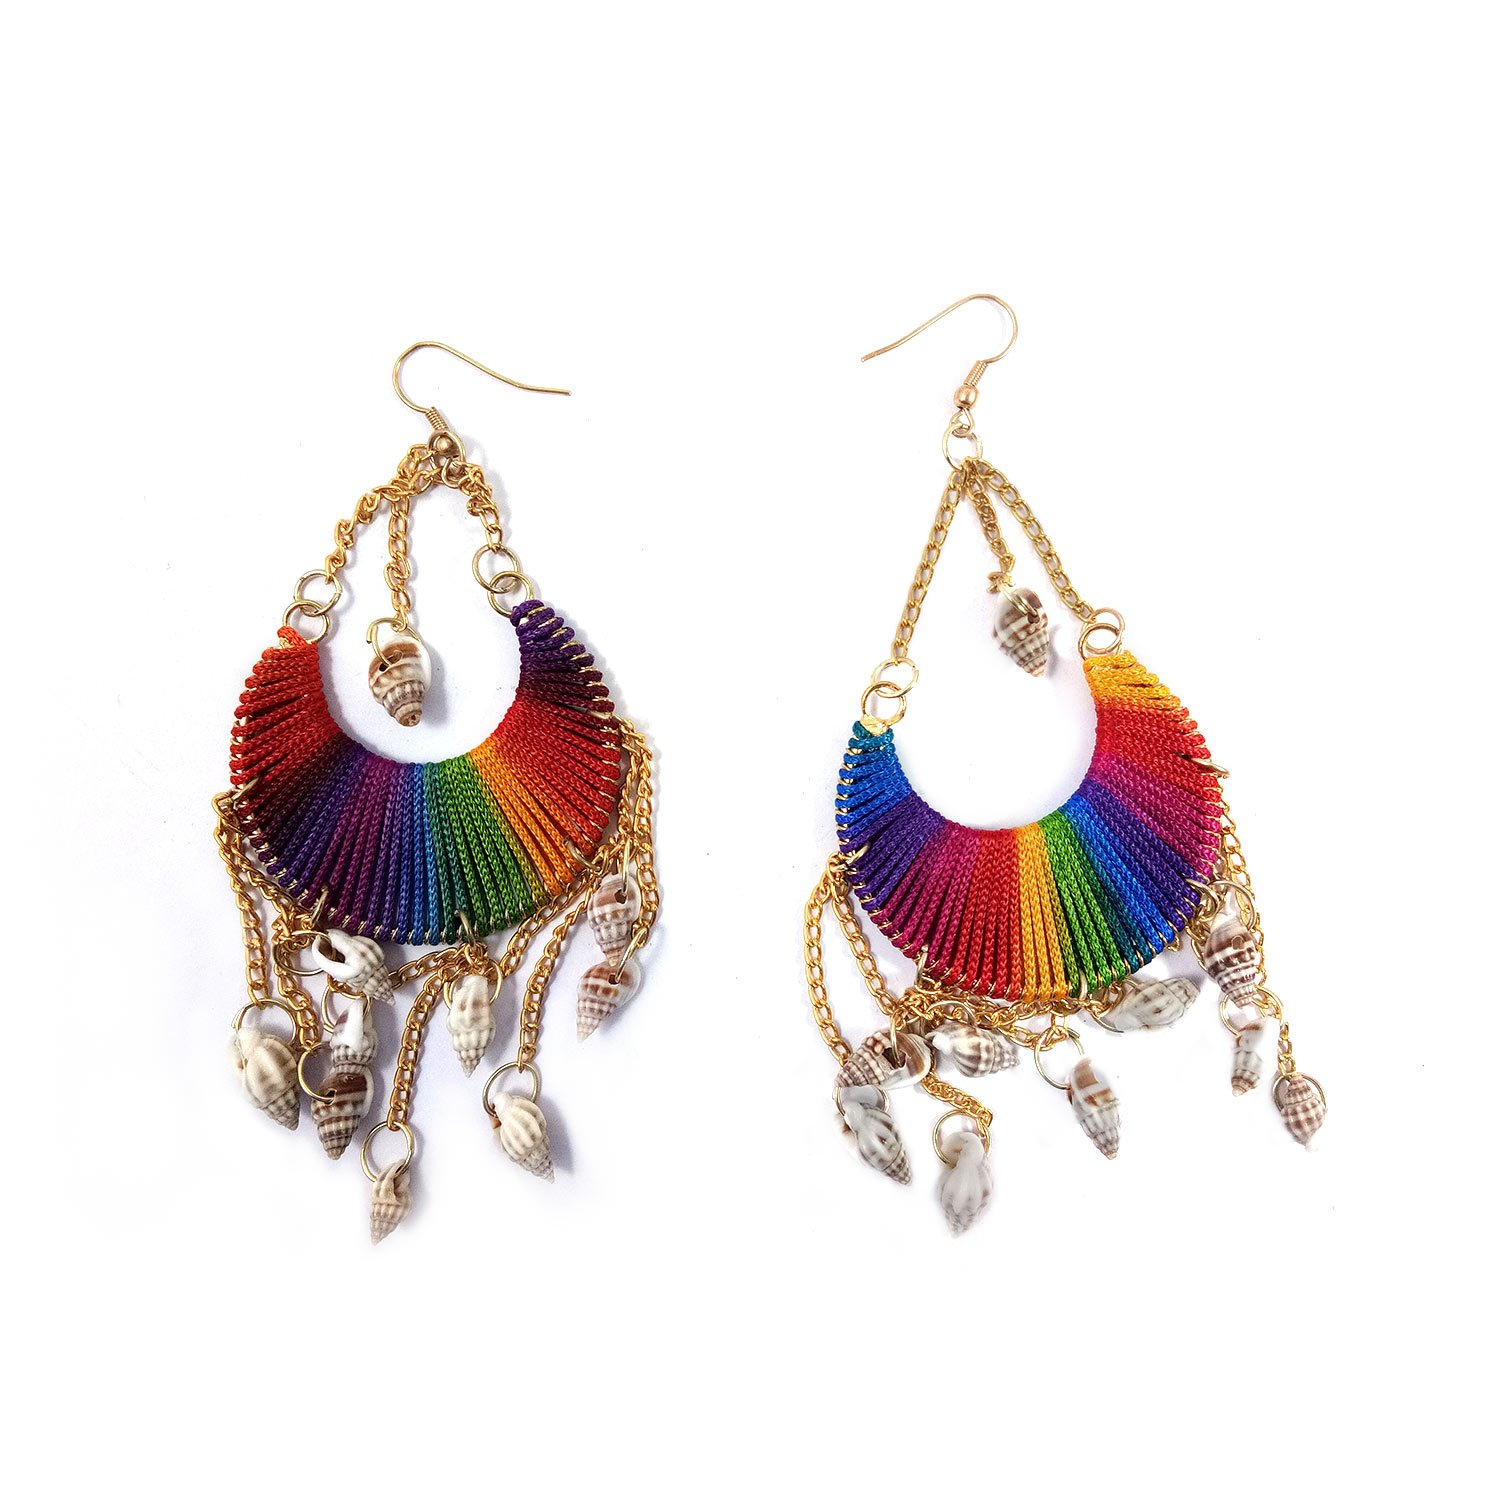 Big Round Jhumka with Conch Shell Dangling Beads Boho Style Tribal Jewellery